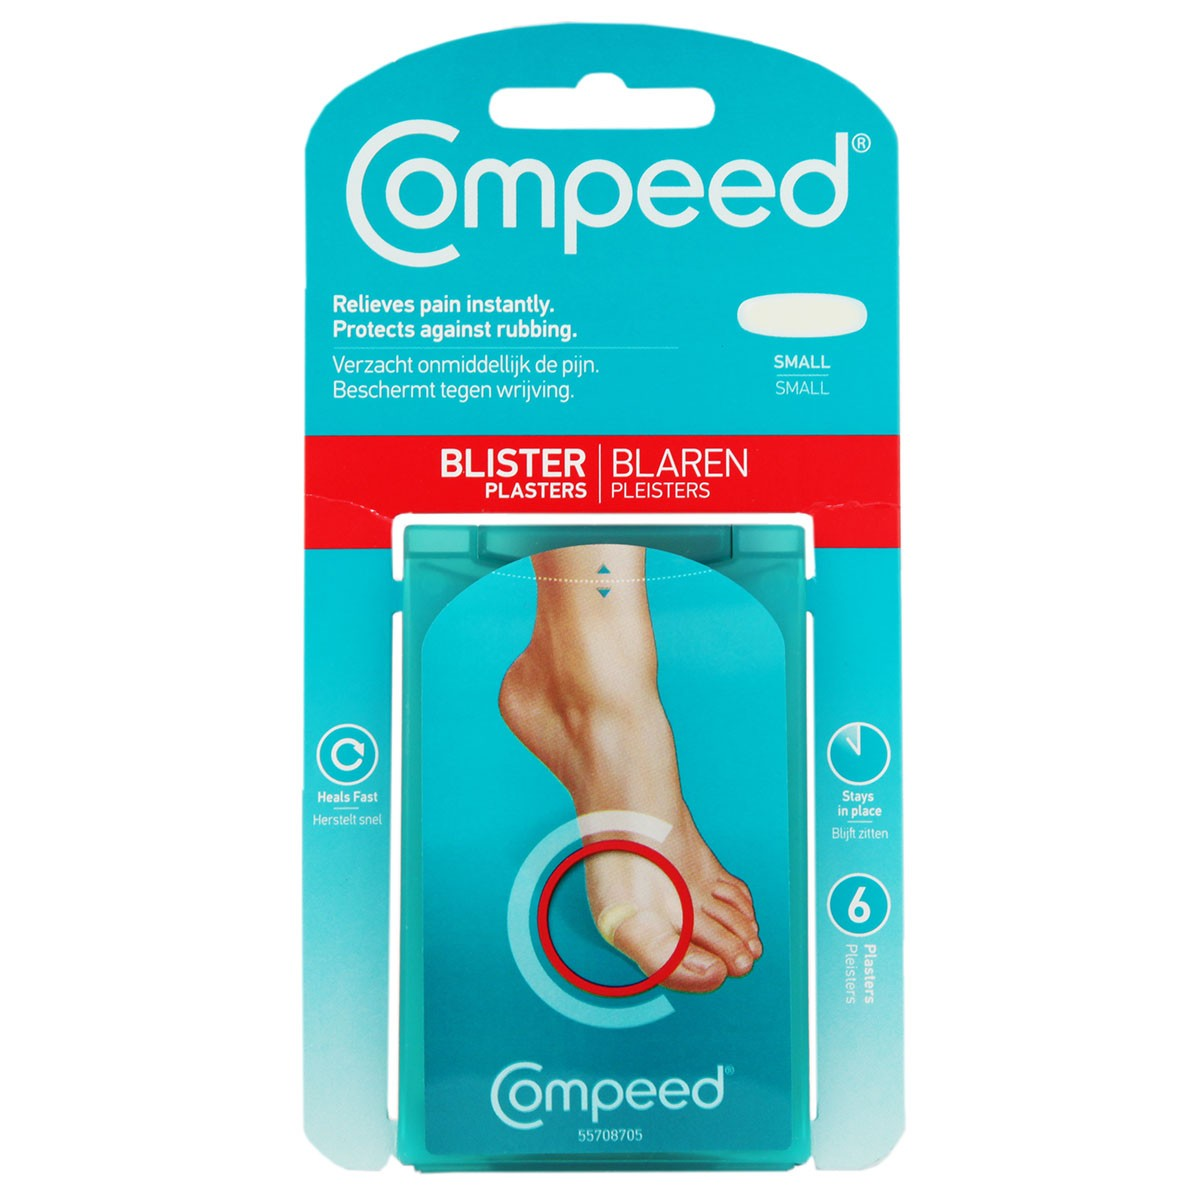 Compeed Blister Plasters – Small